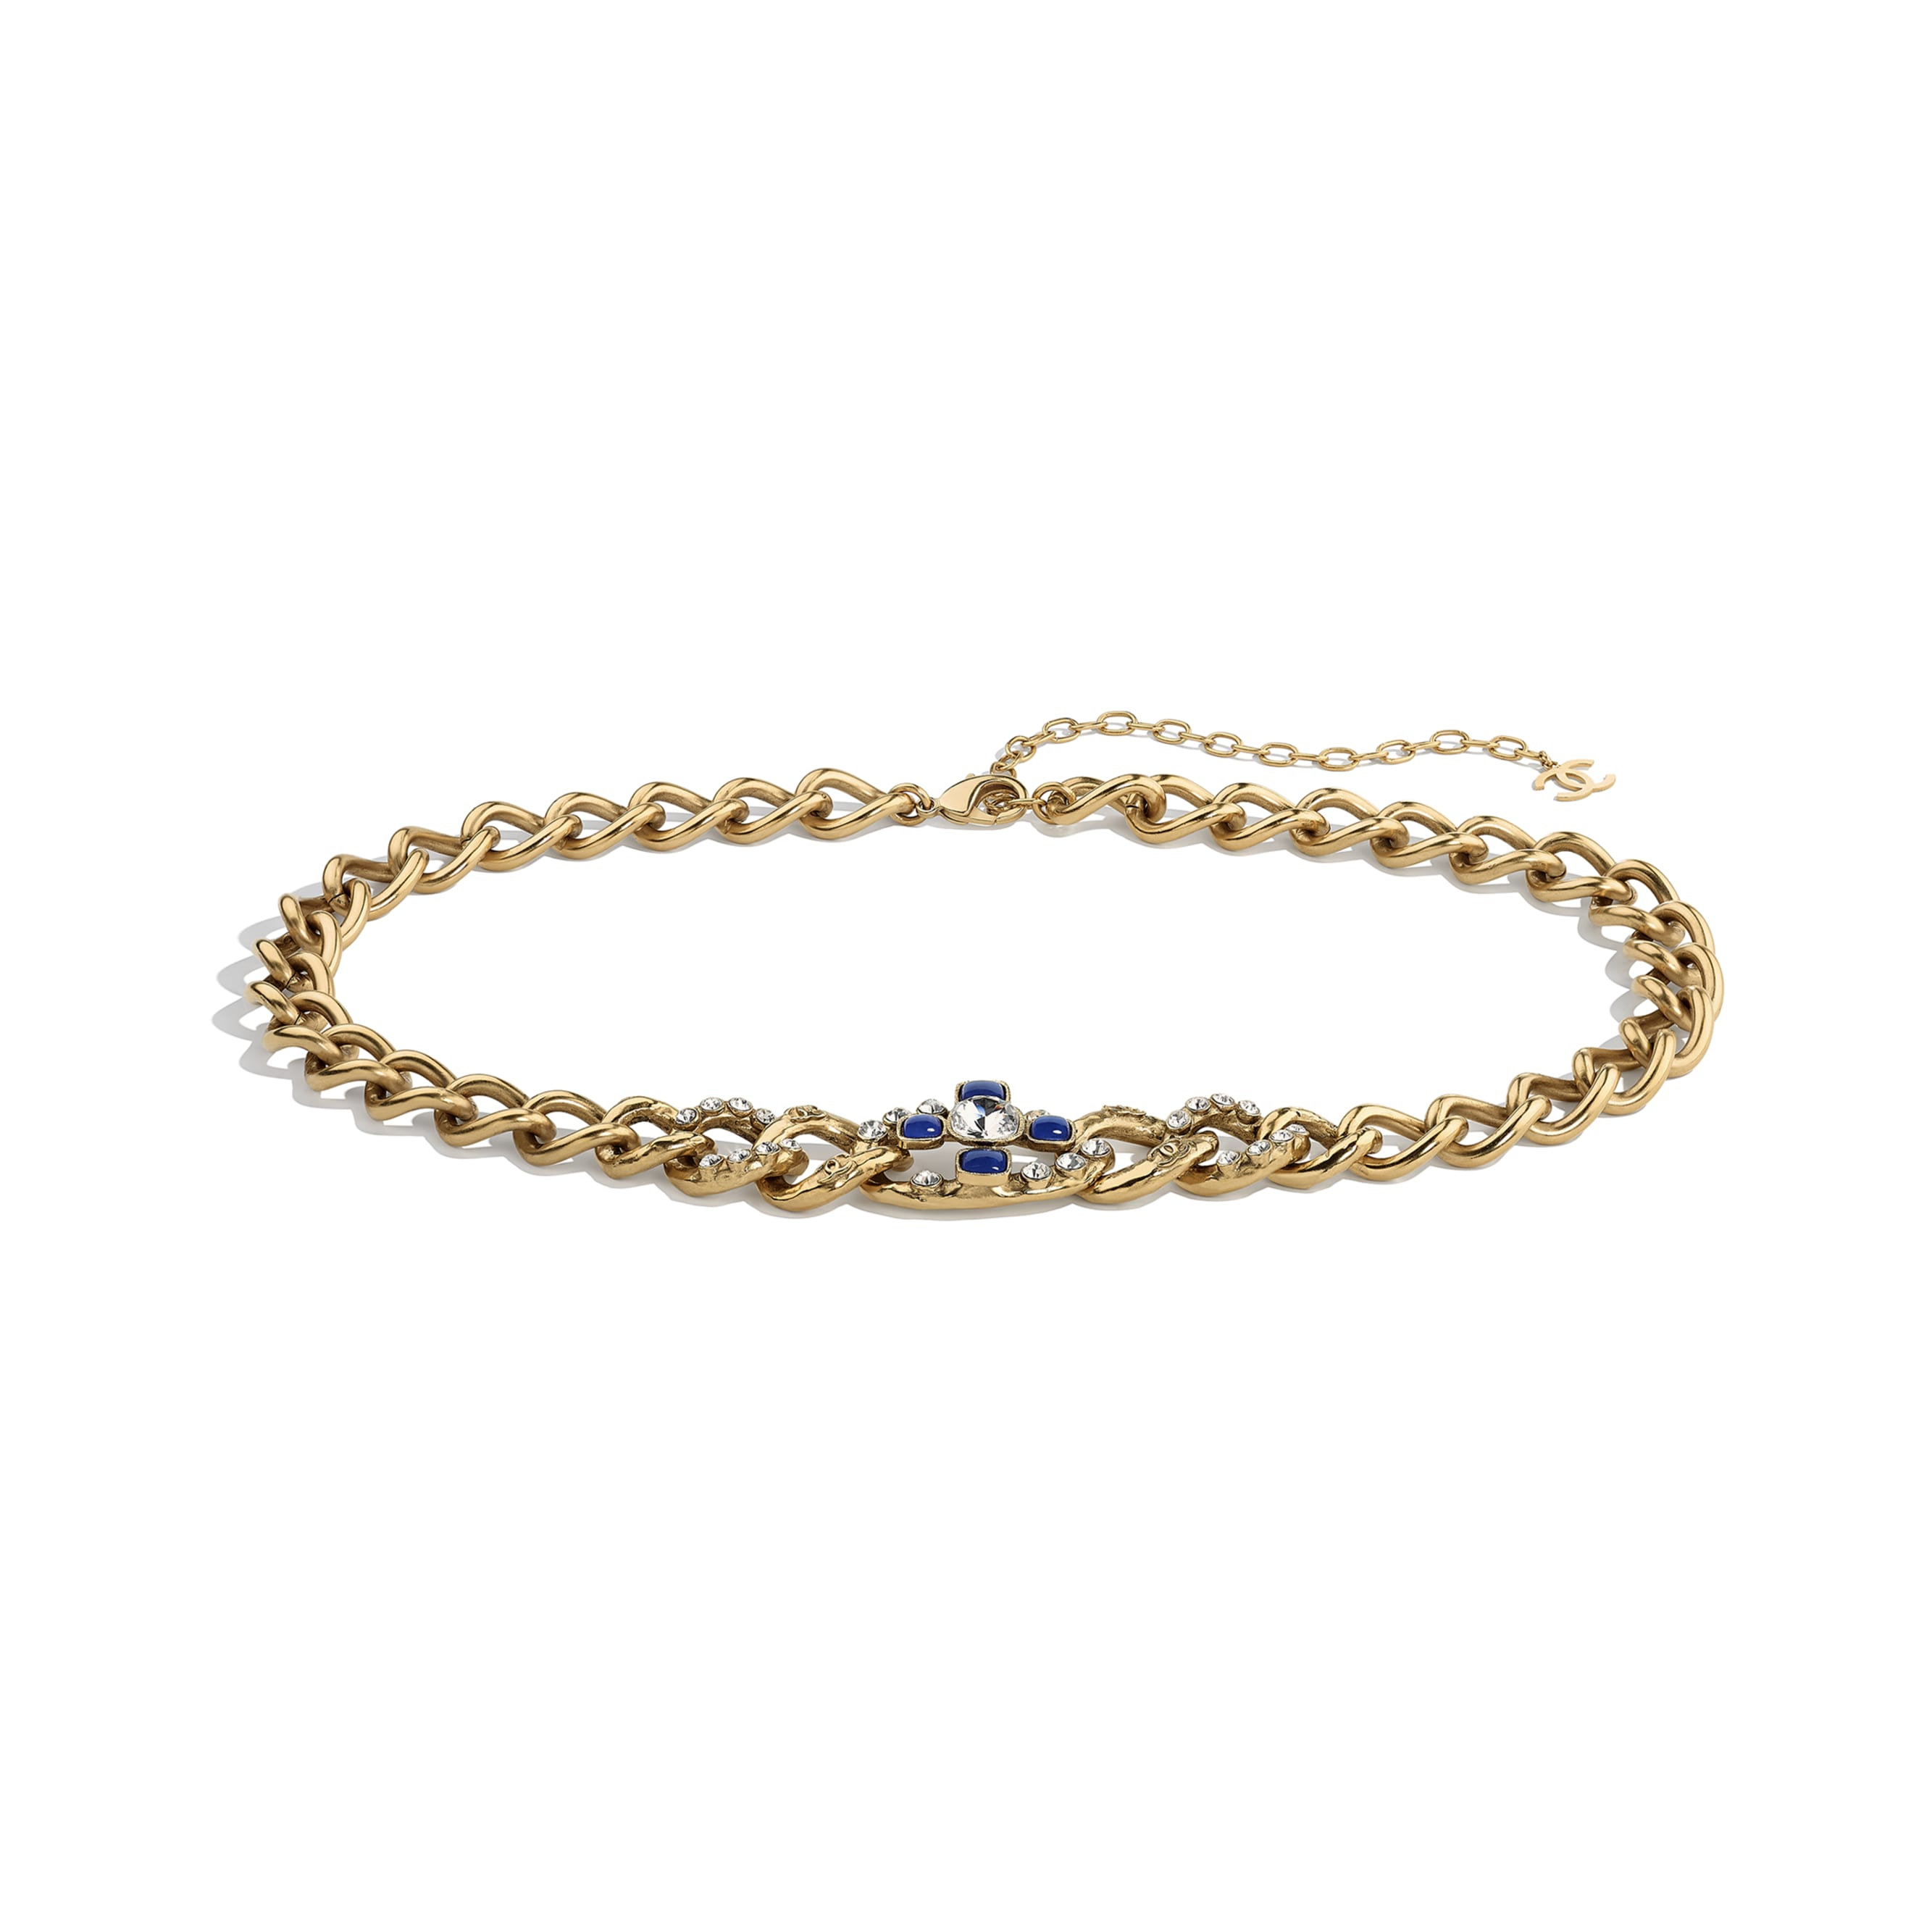 Belt - Gold, Blue & Crystal - Metal, Glass & Diamanté - CHANEL - Default view - see standard sized version